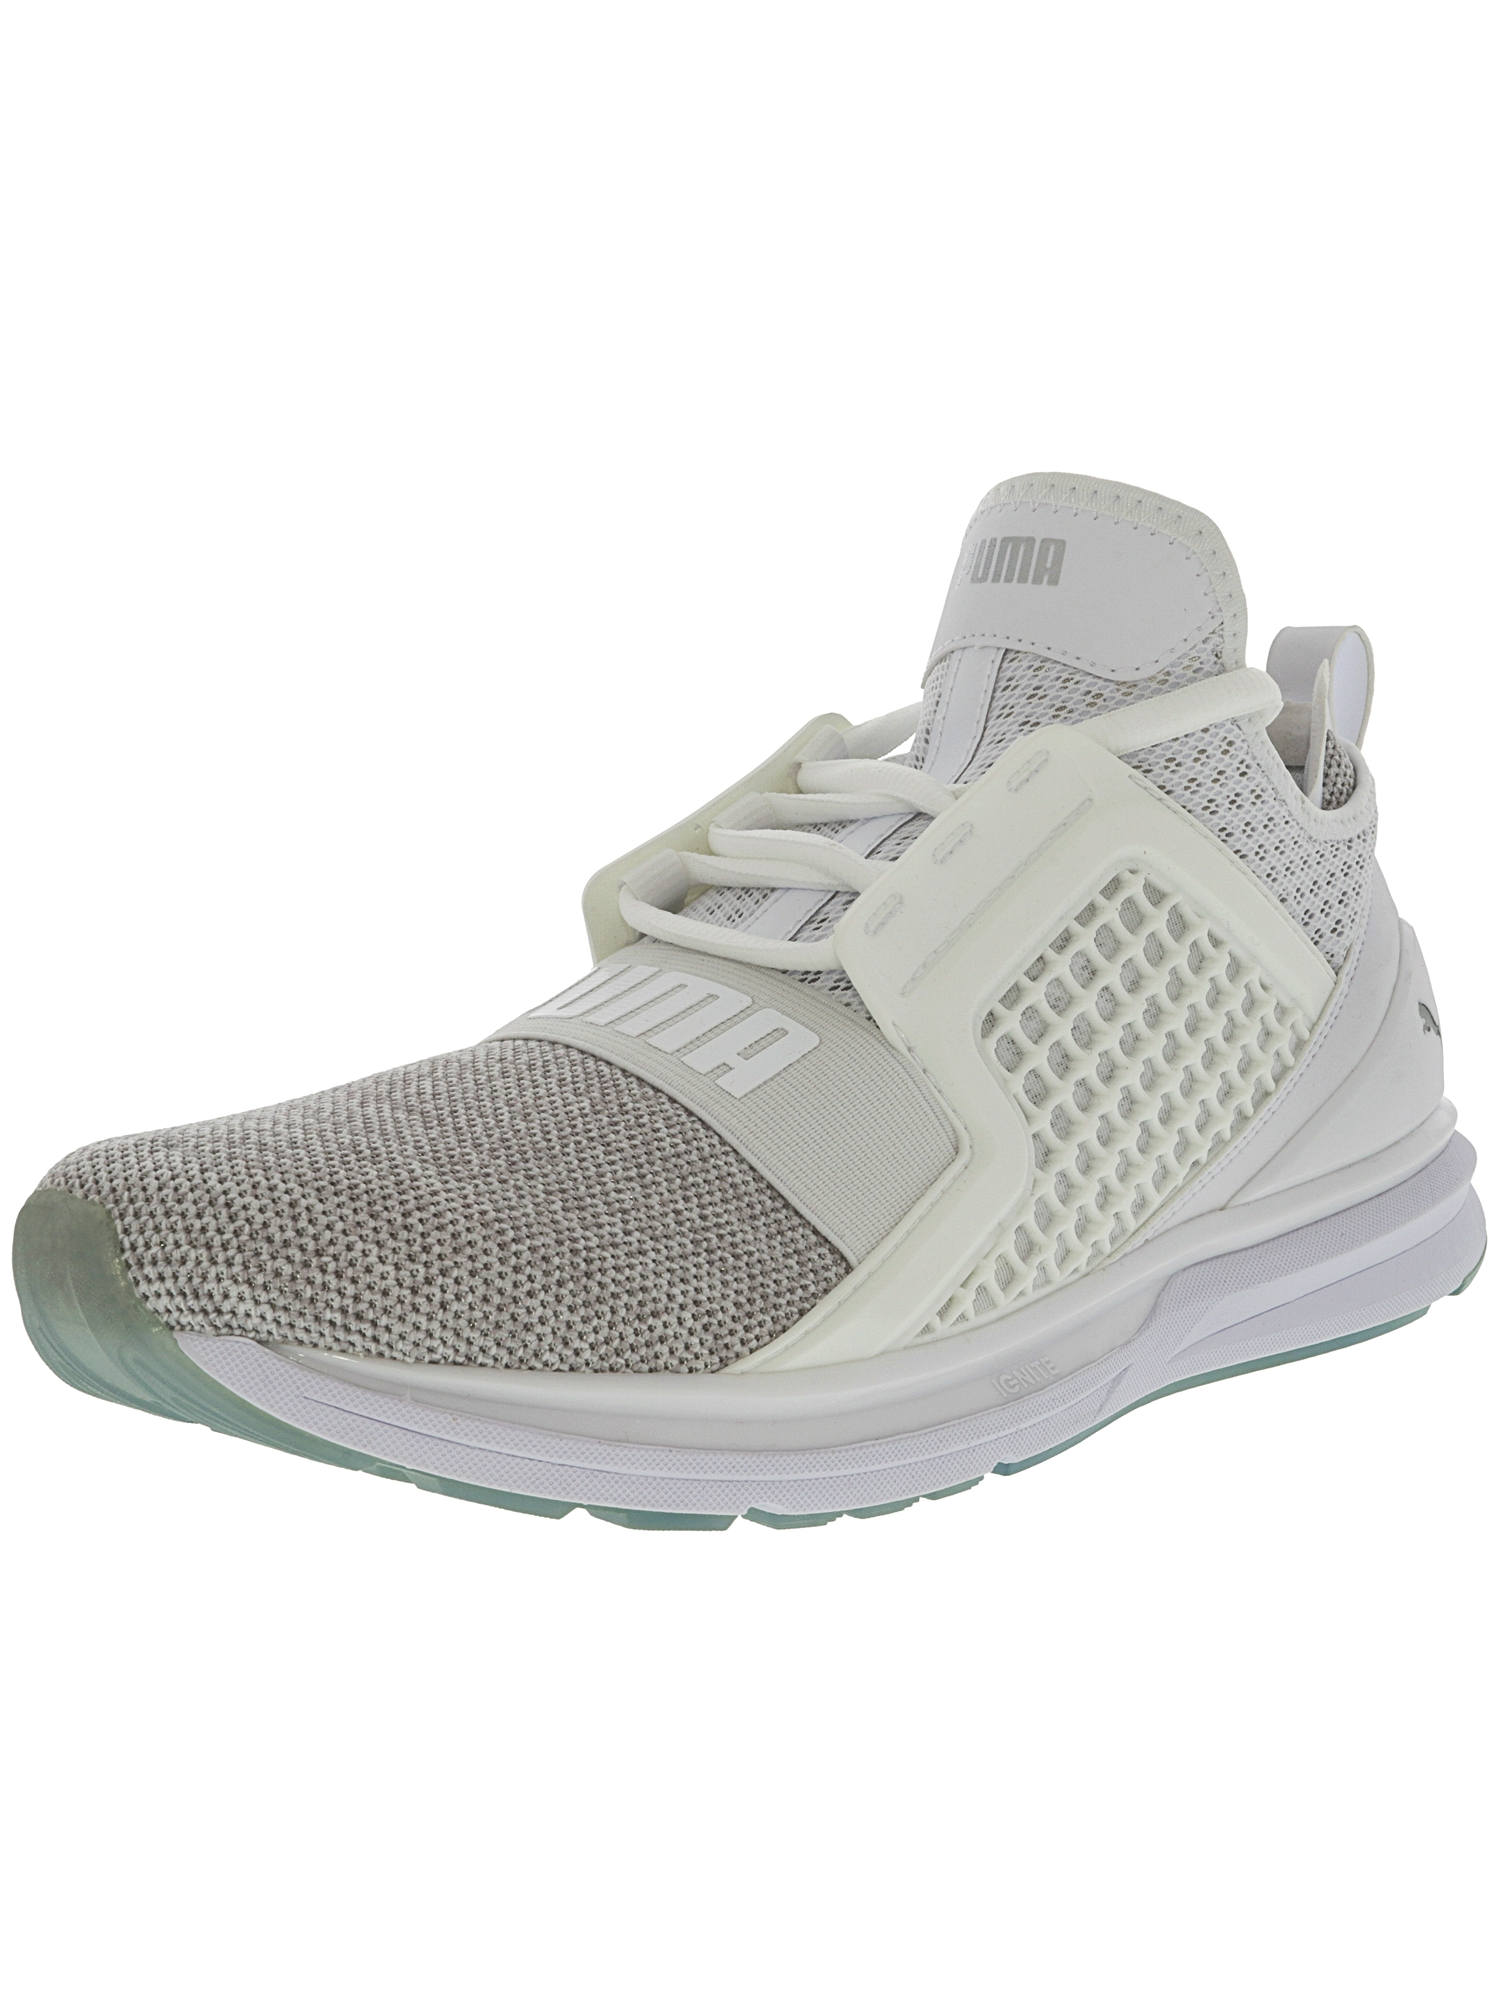 Puma Men's Ignite Limitless White / Silver Ankle-High Basketball Shoe - 10.5M